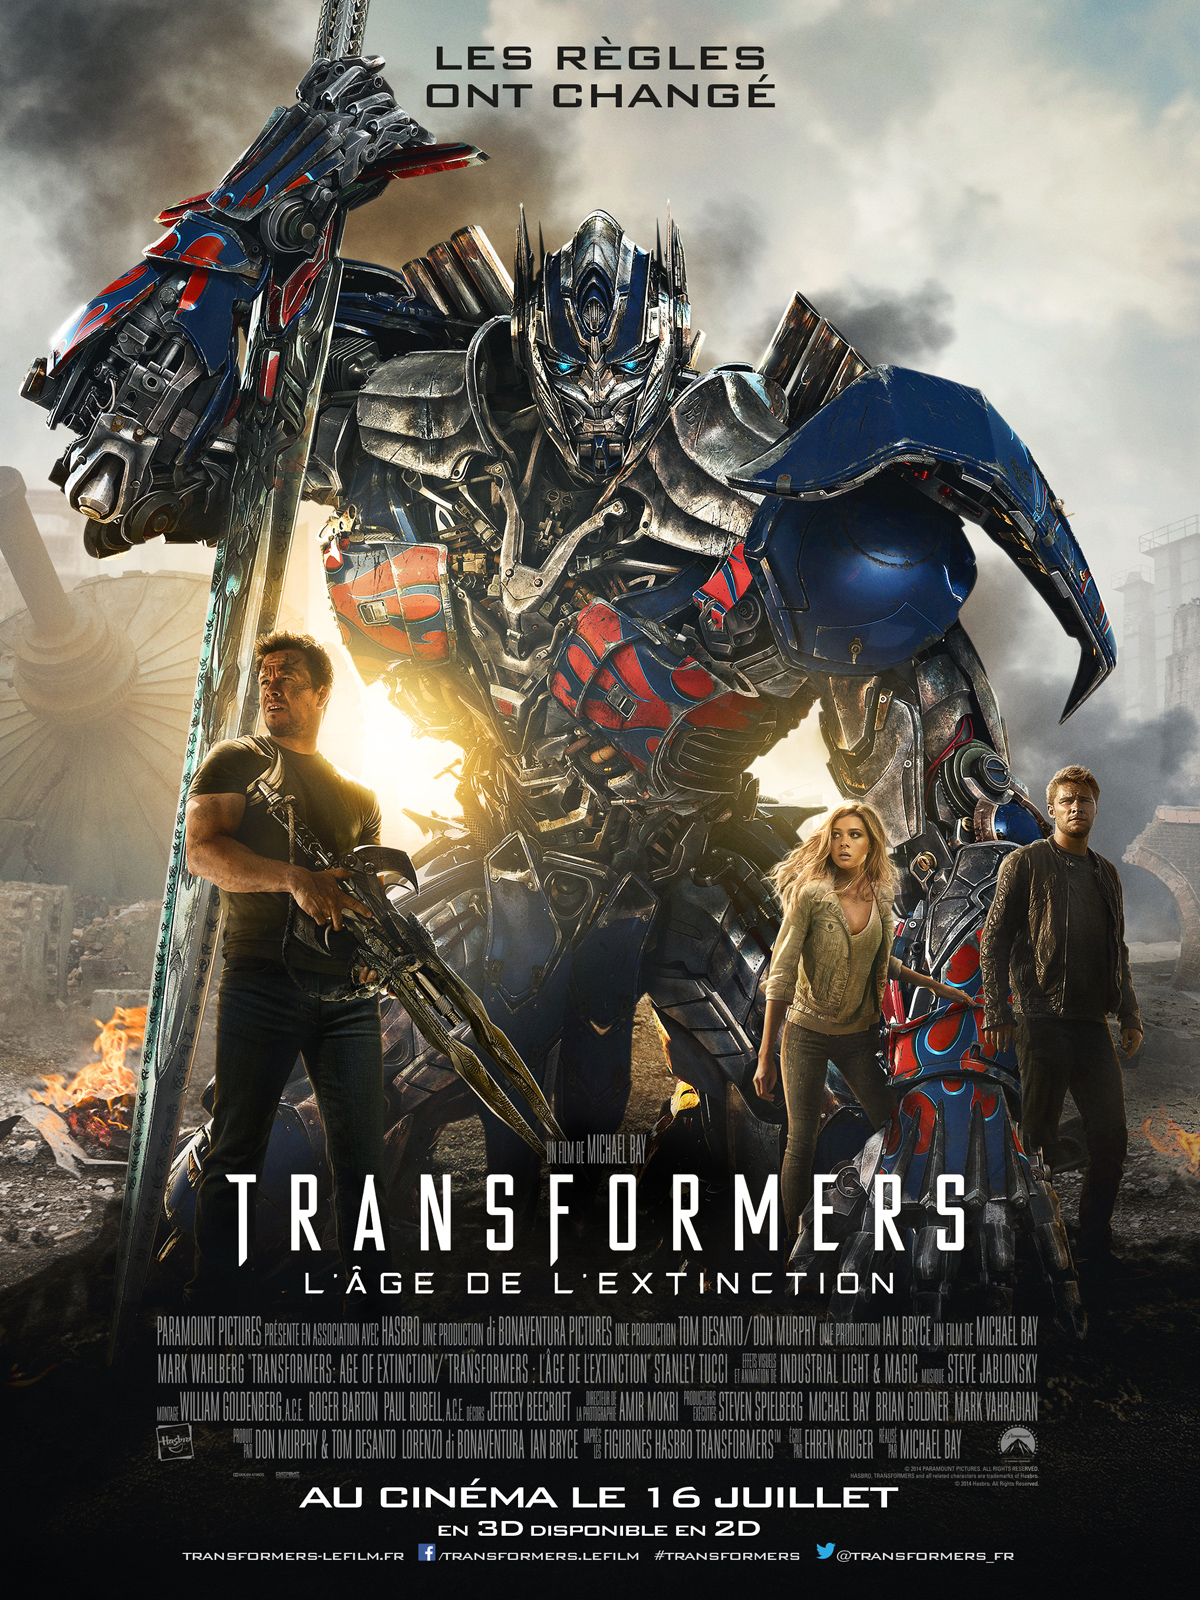 TELECHARGER Transformers : l'âge de l'extinction FRENCH BDRIP GRATUITEMENT